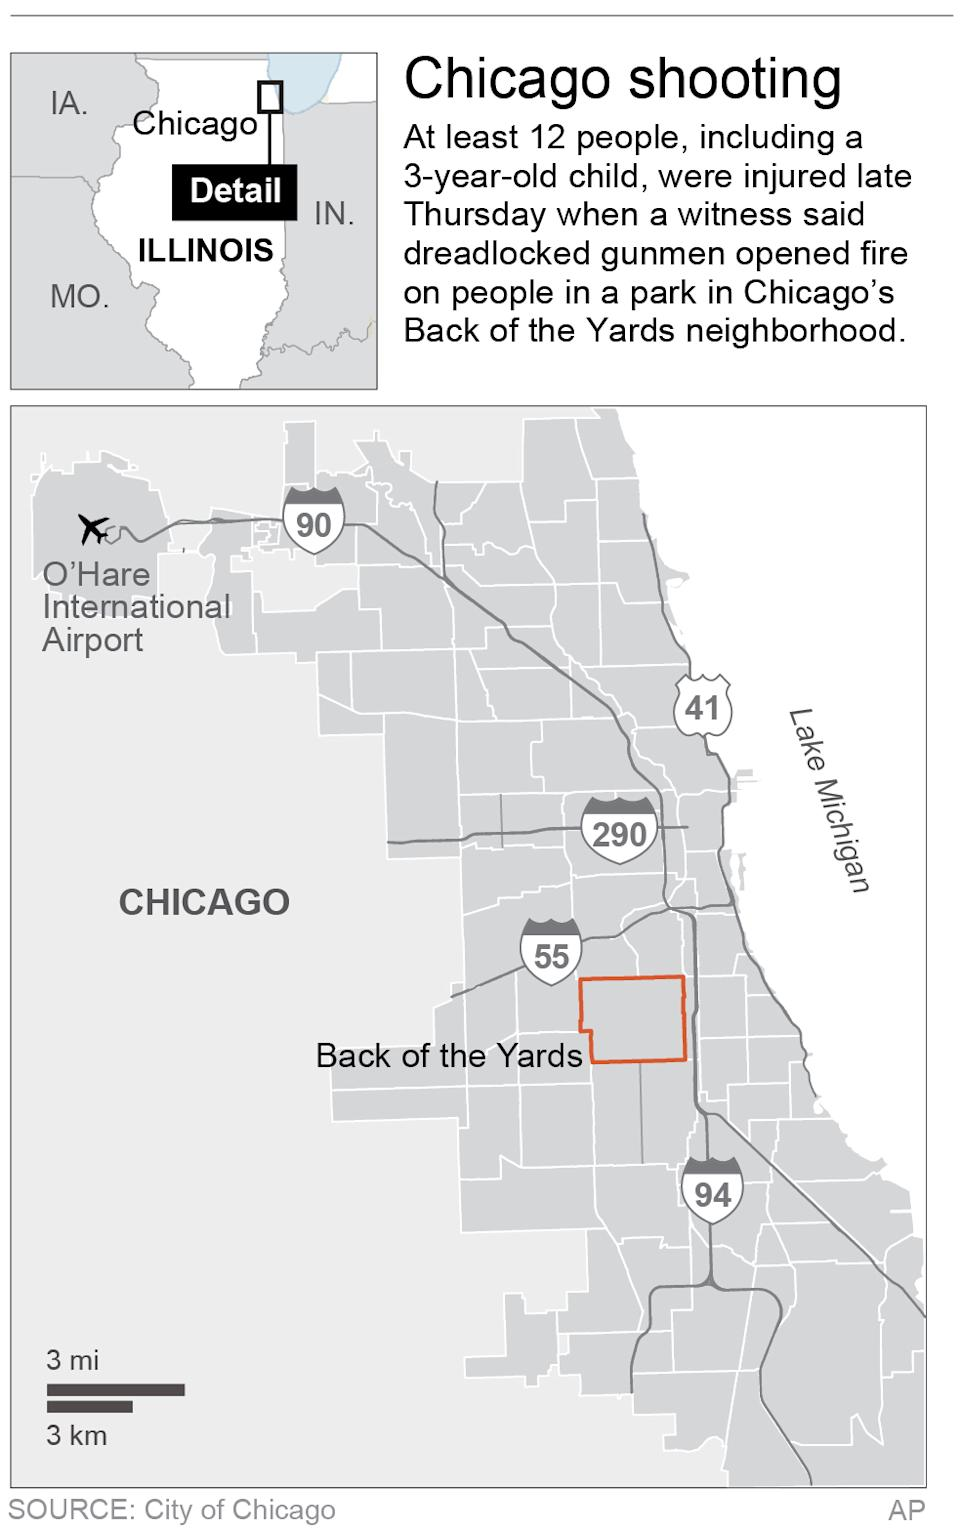 Map updates chatter; locates Back of the Yards neighborhood in Chicago, Ill.; 2c x 5 inches; 96.3 mm x 127 mm;